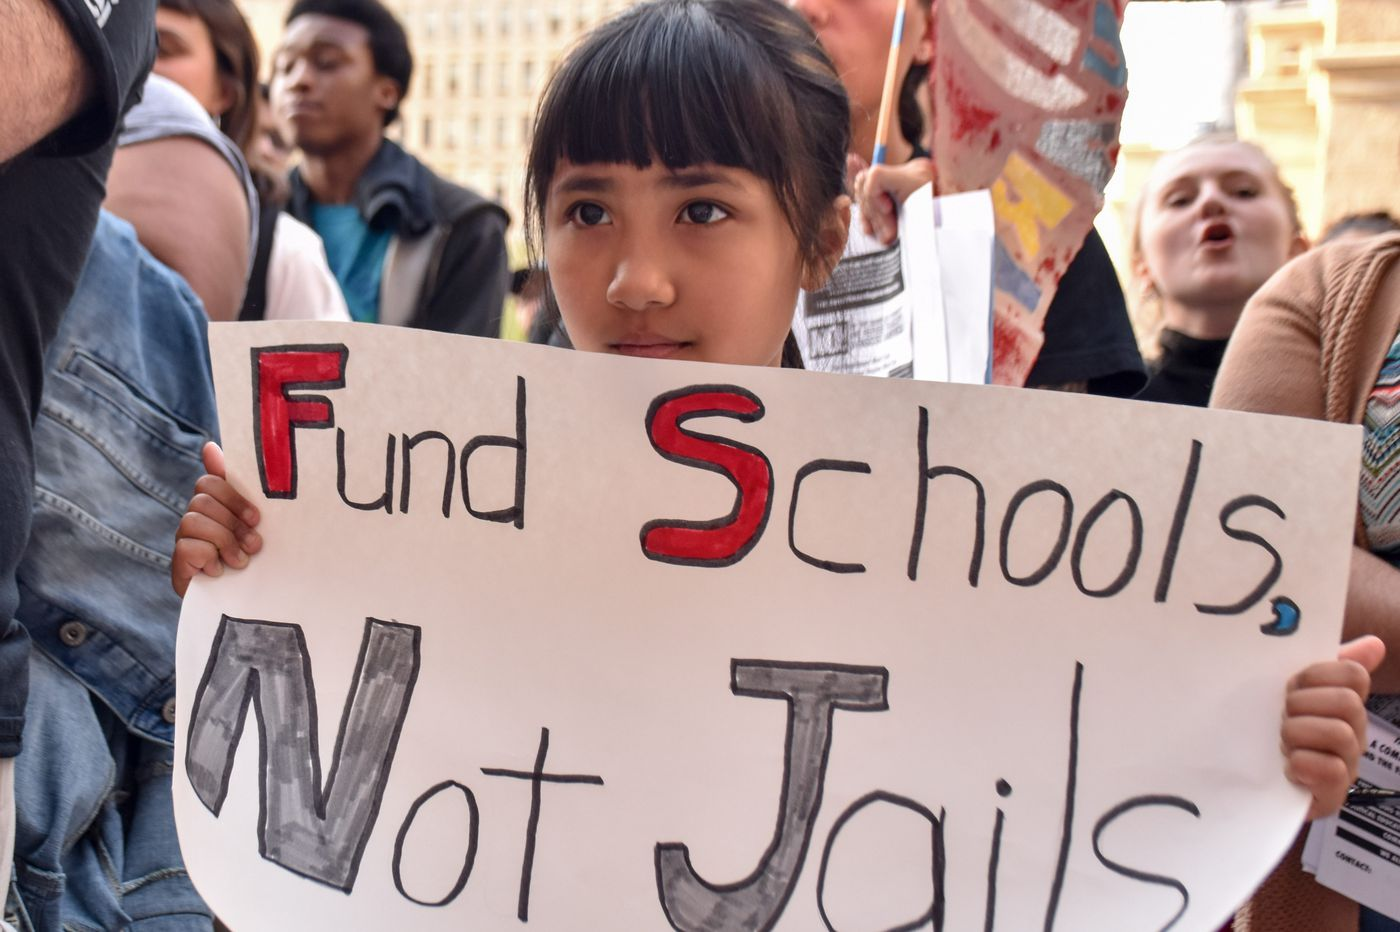 Philly courts to stop withholding controversial bail fee